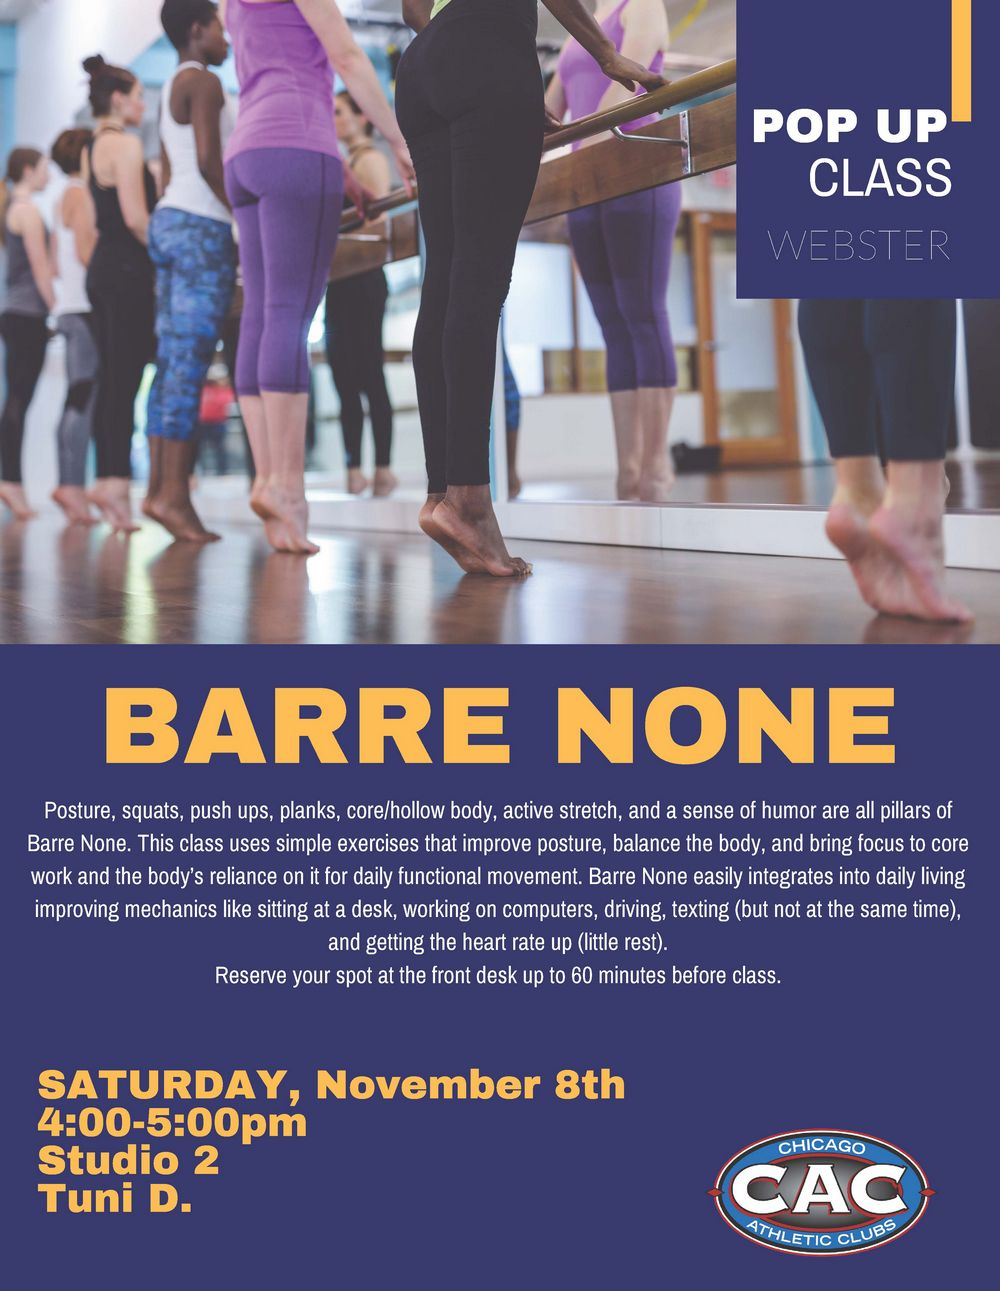 POP UP BARRE NONE WEBSTER.jpg